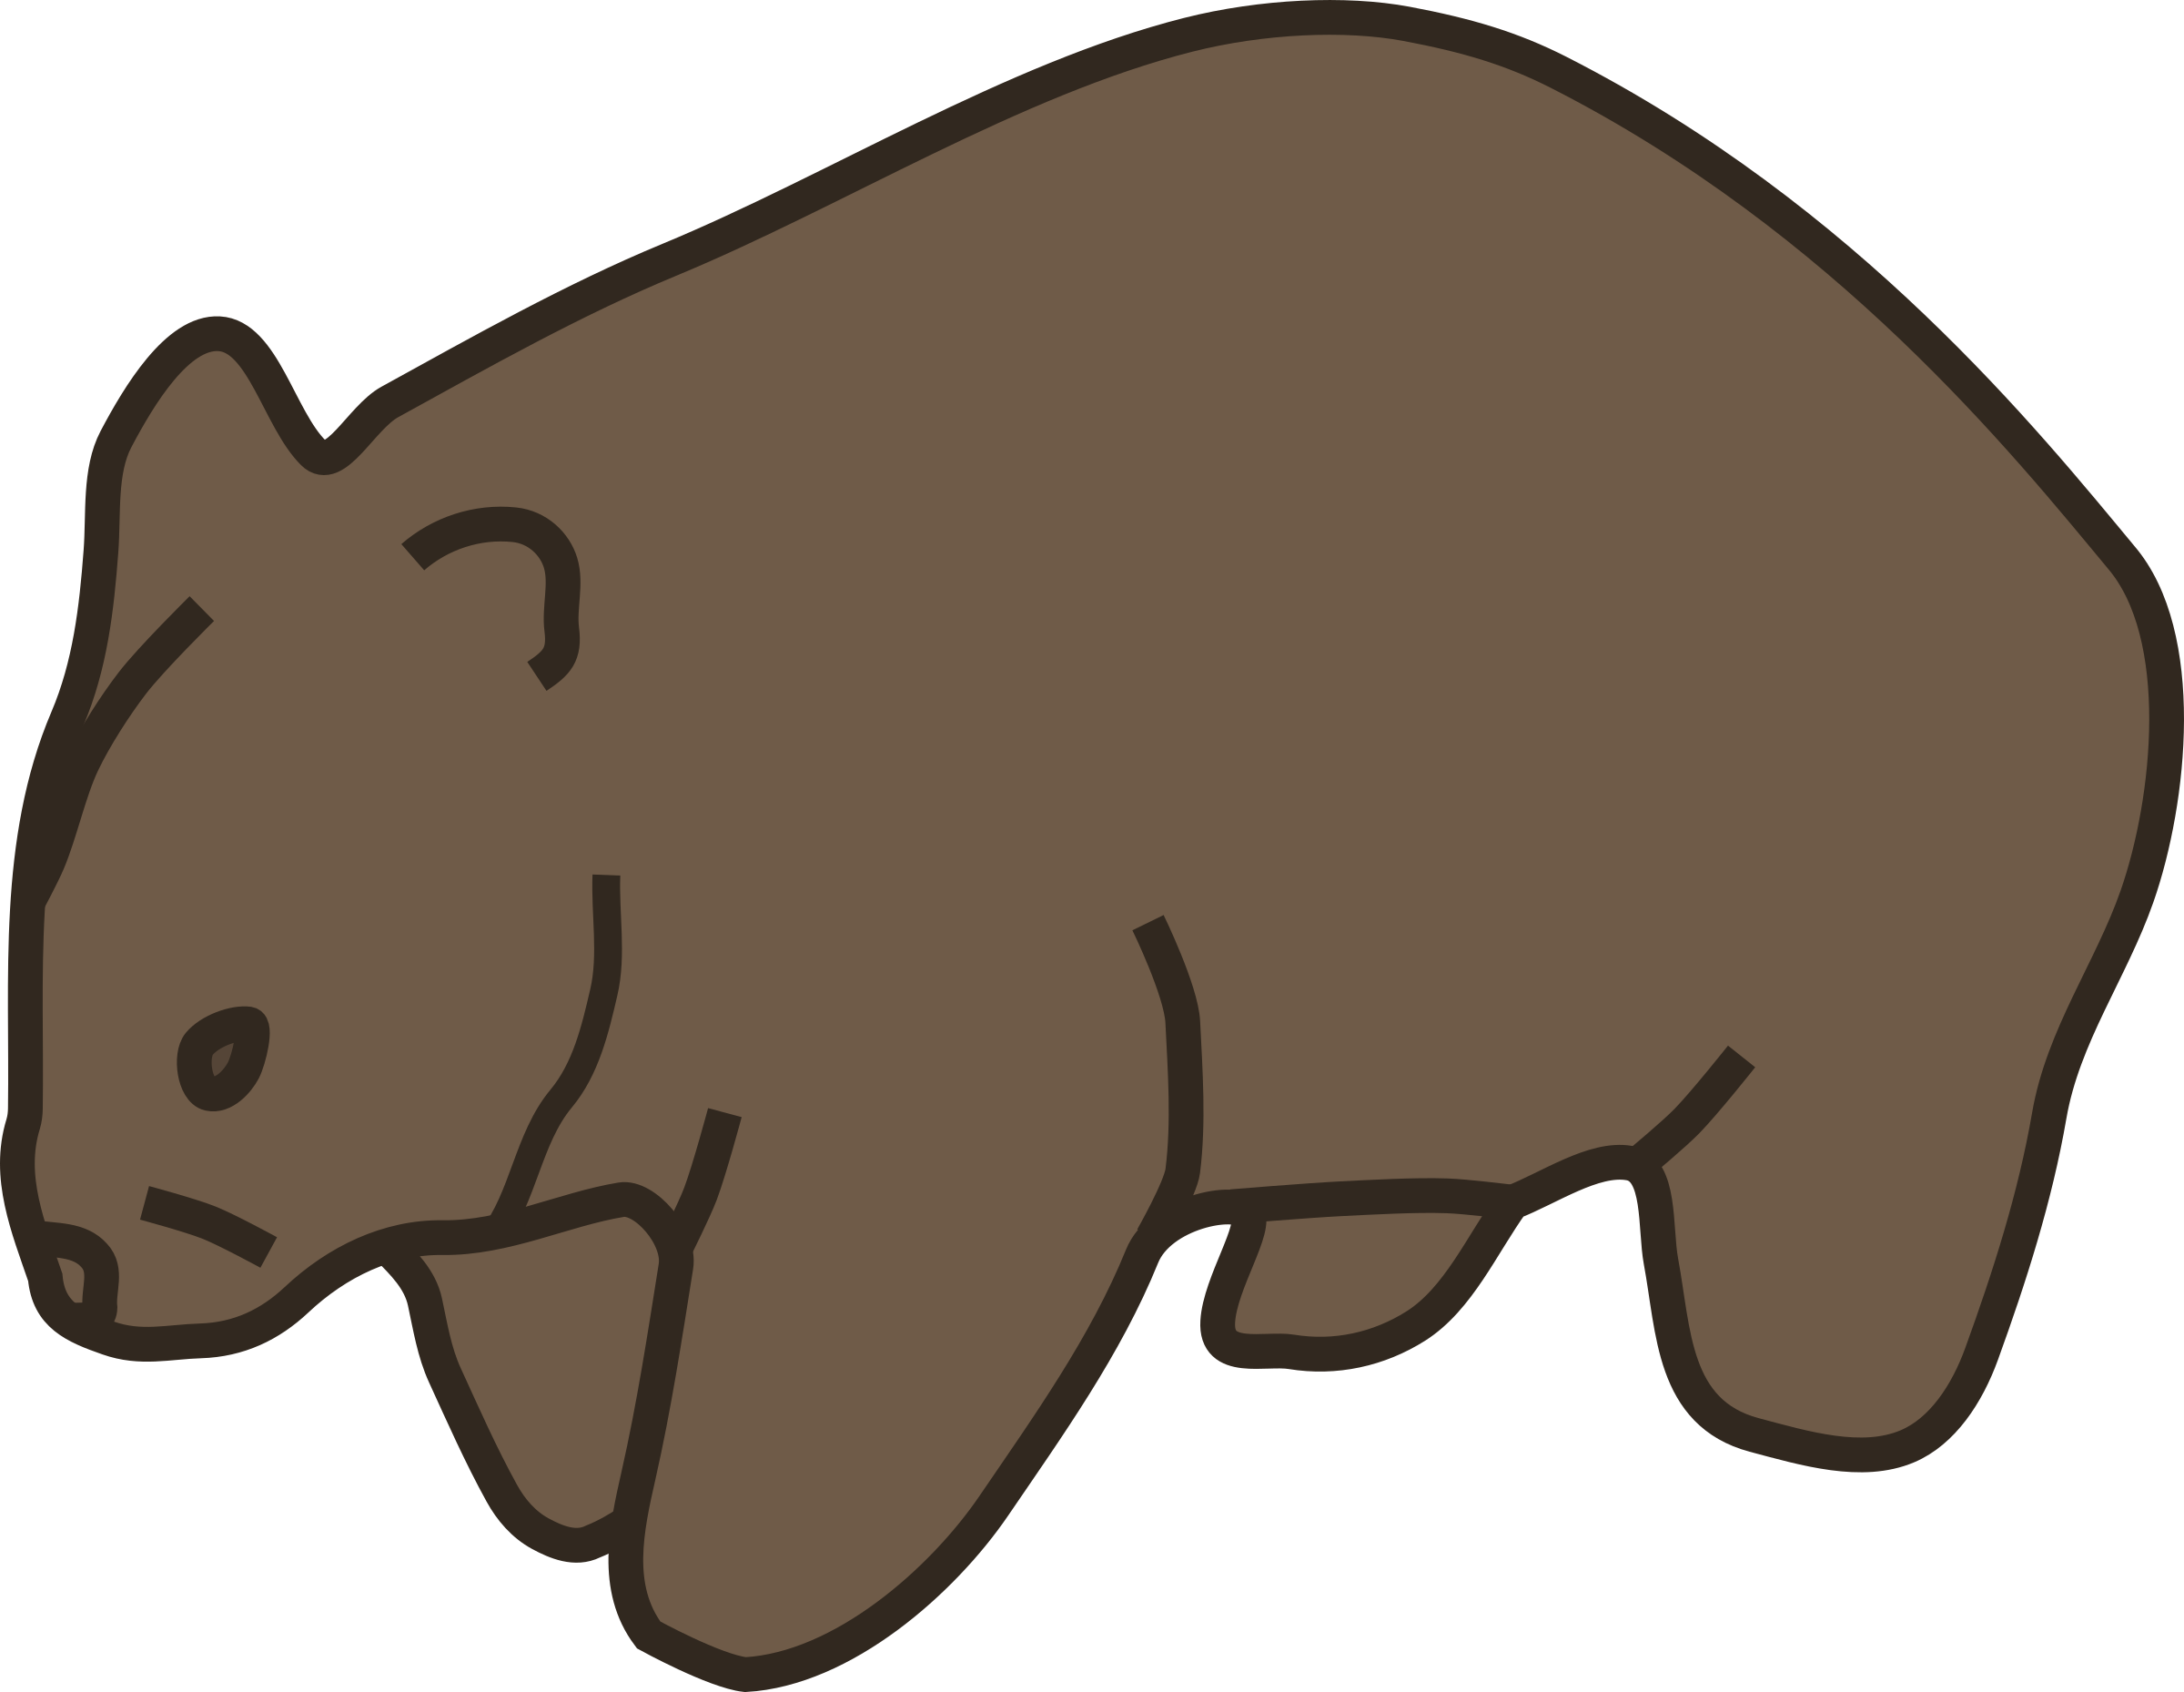 Wombat by laobc